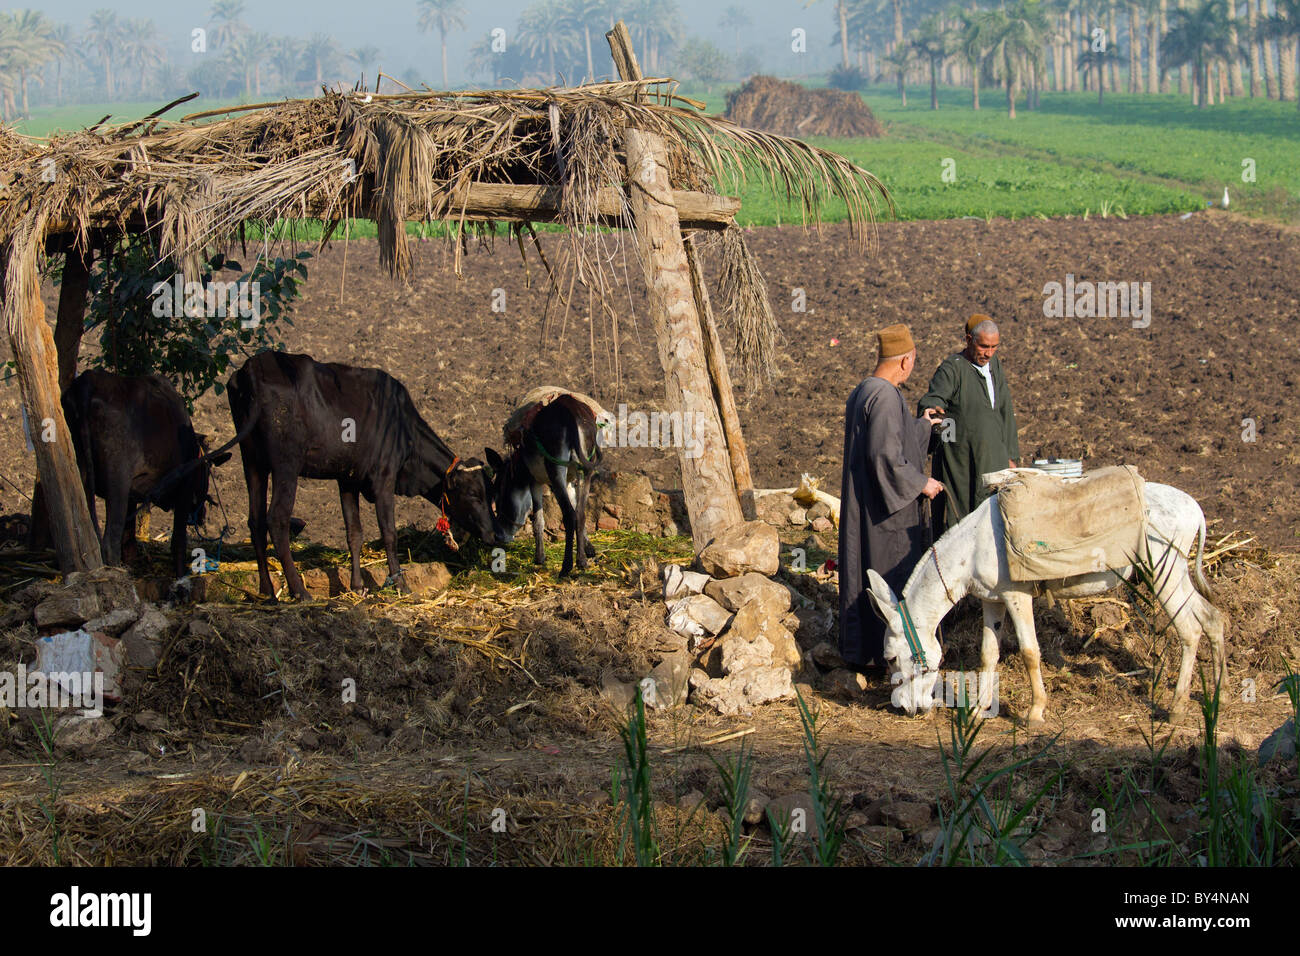 Cow shed in the fields outsider Saqqara, Egypt 2 - Stock Image